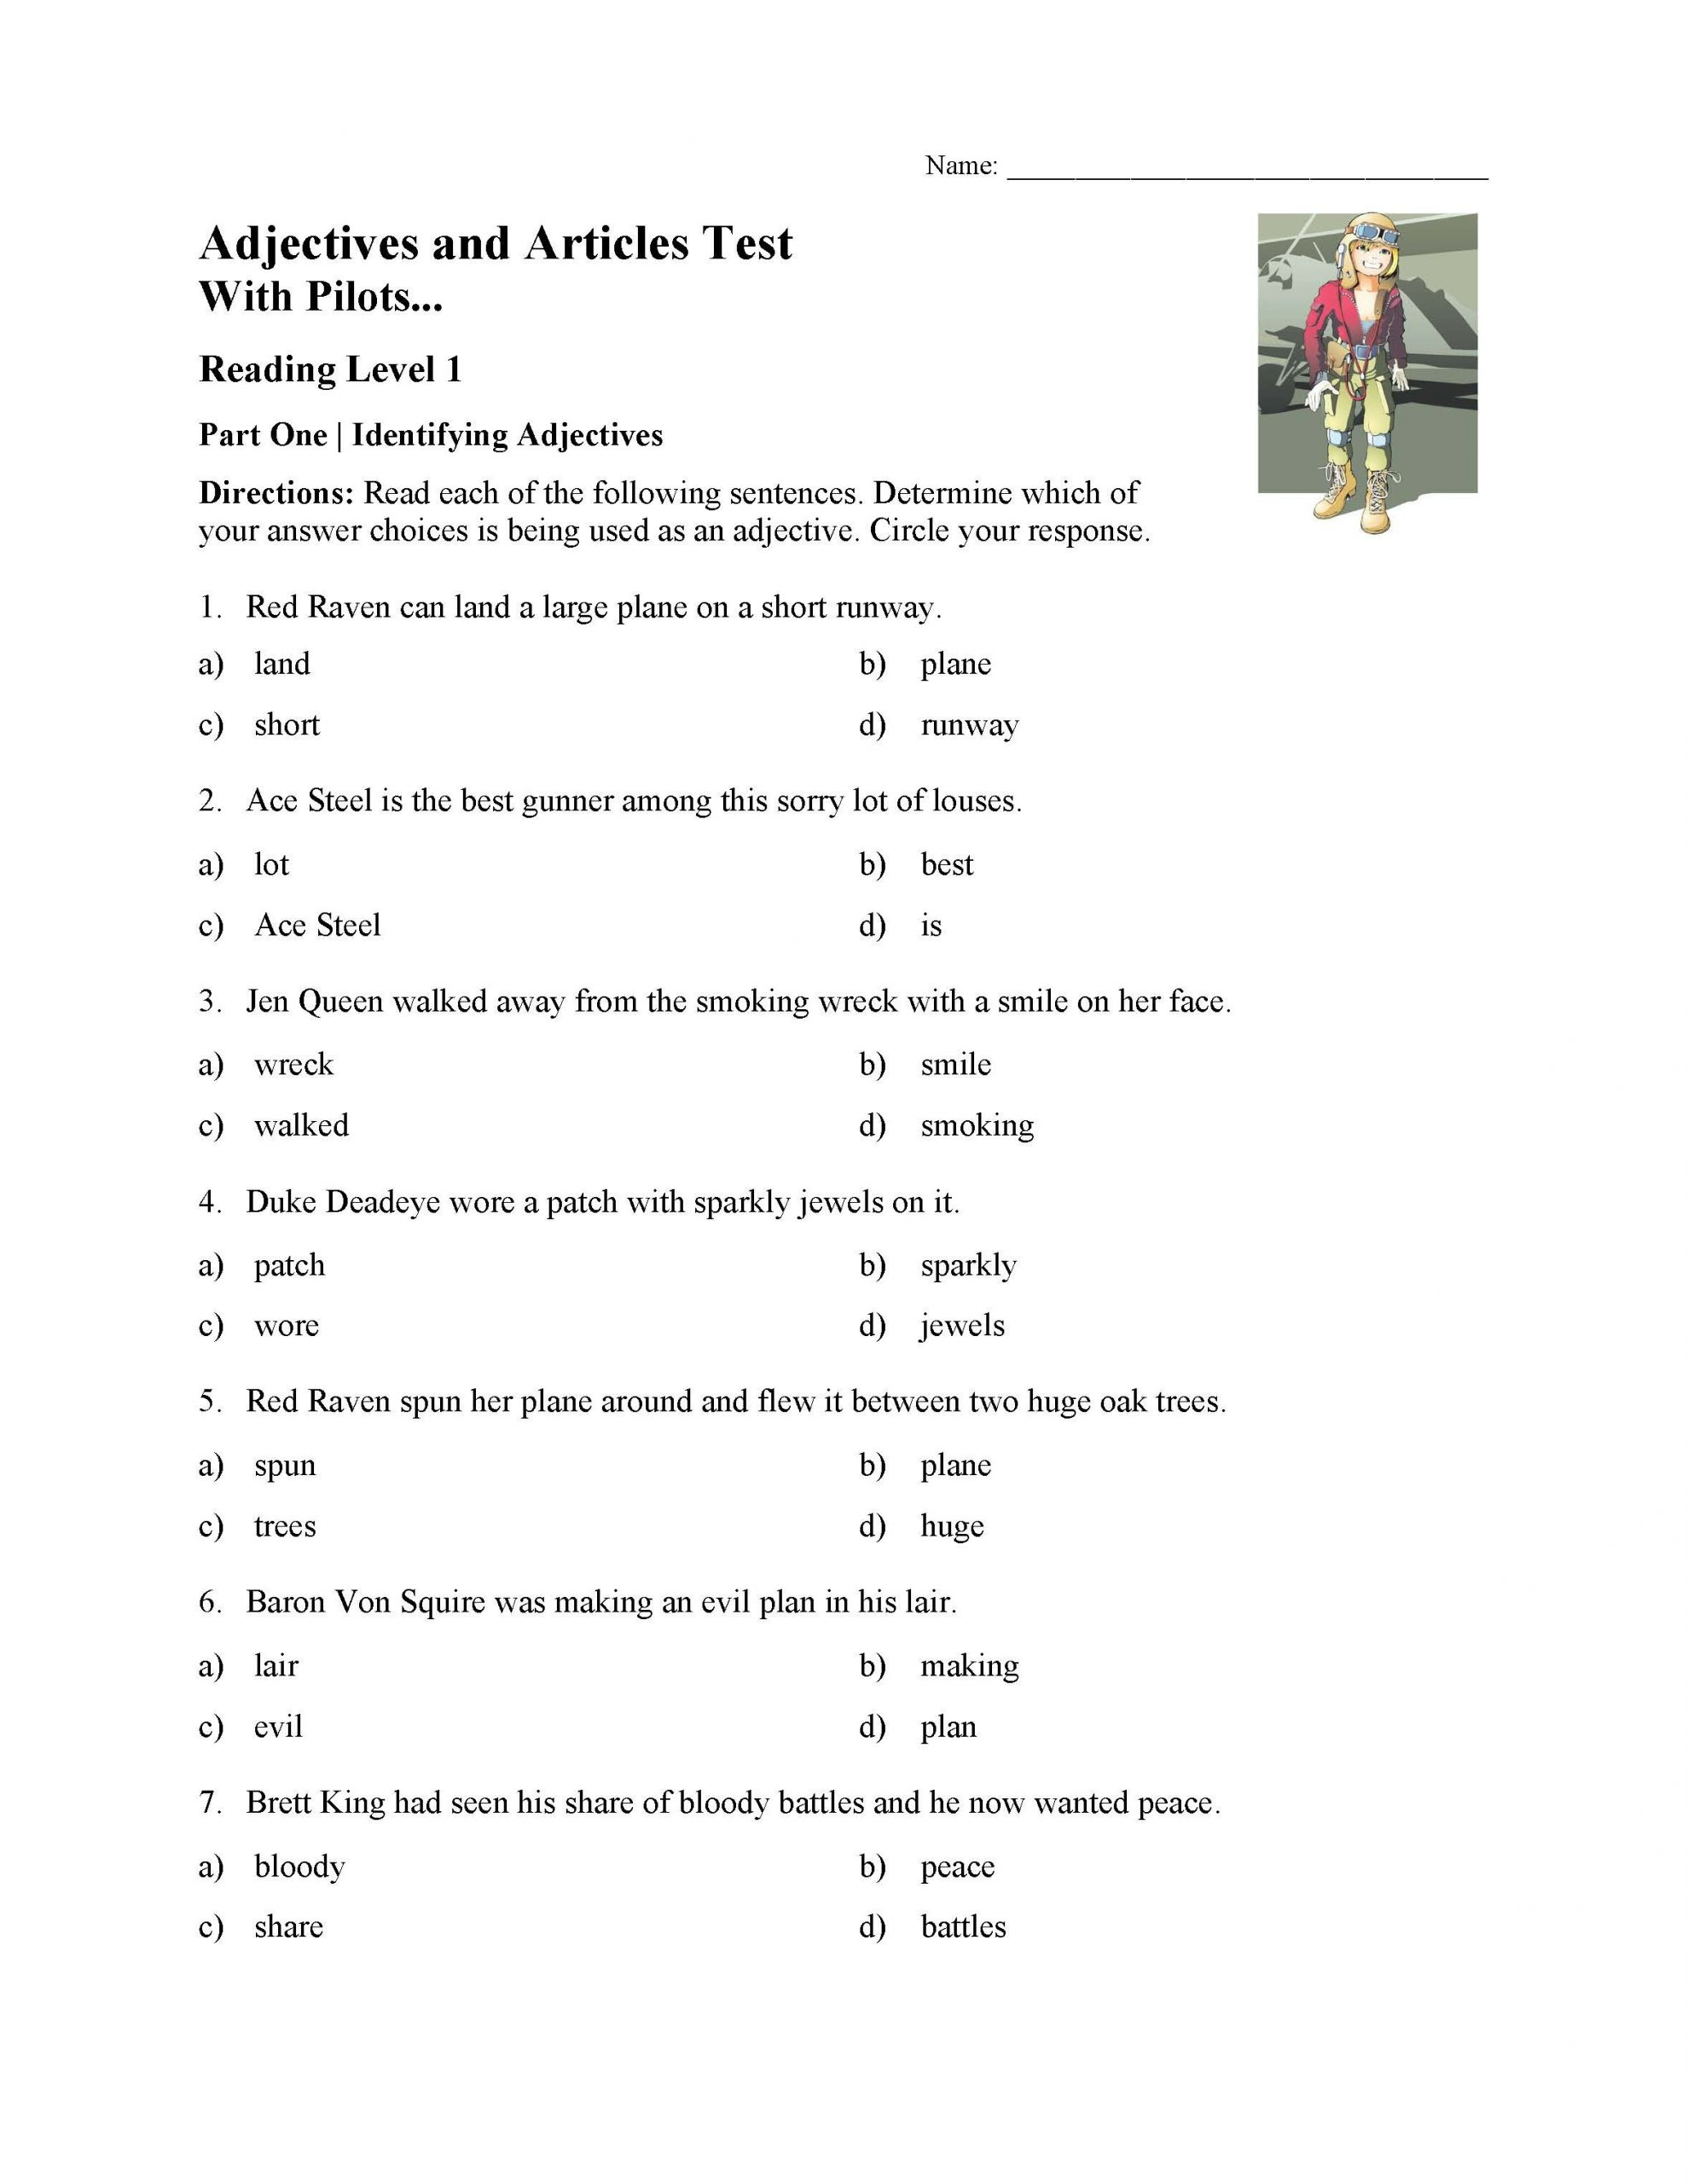 Reading Worksheets 5th Grade Adjectives and Articles Test with Pilots Reading Level 1